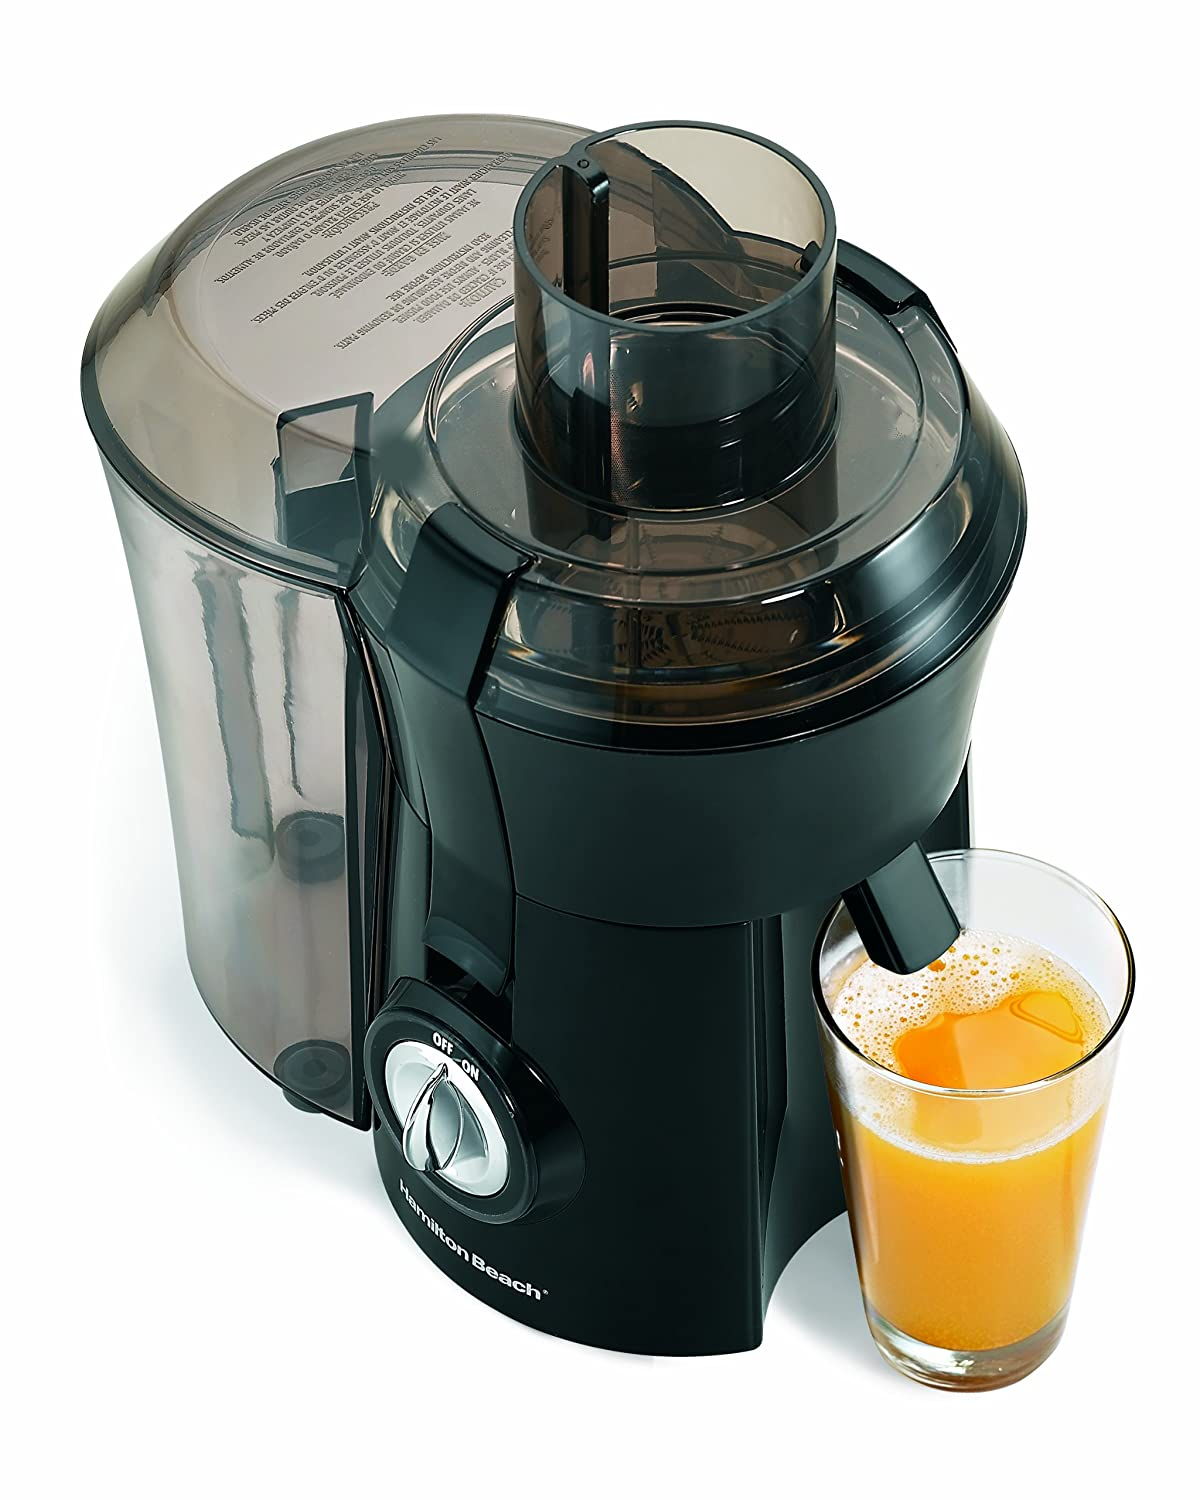 Hamilton Beach Big Mouth Juice Extractor - Review